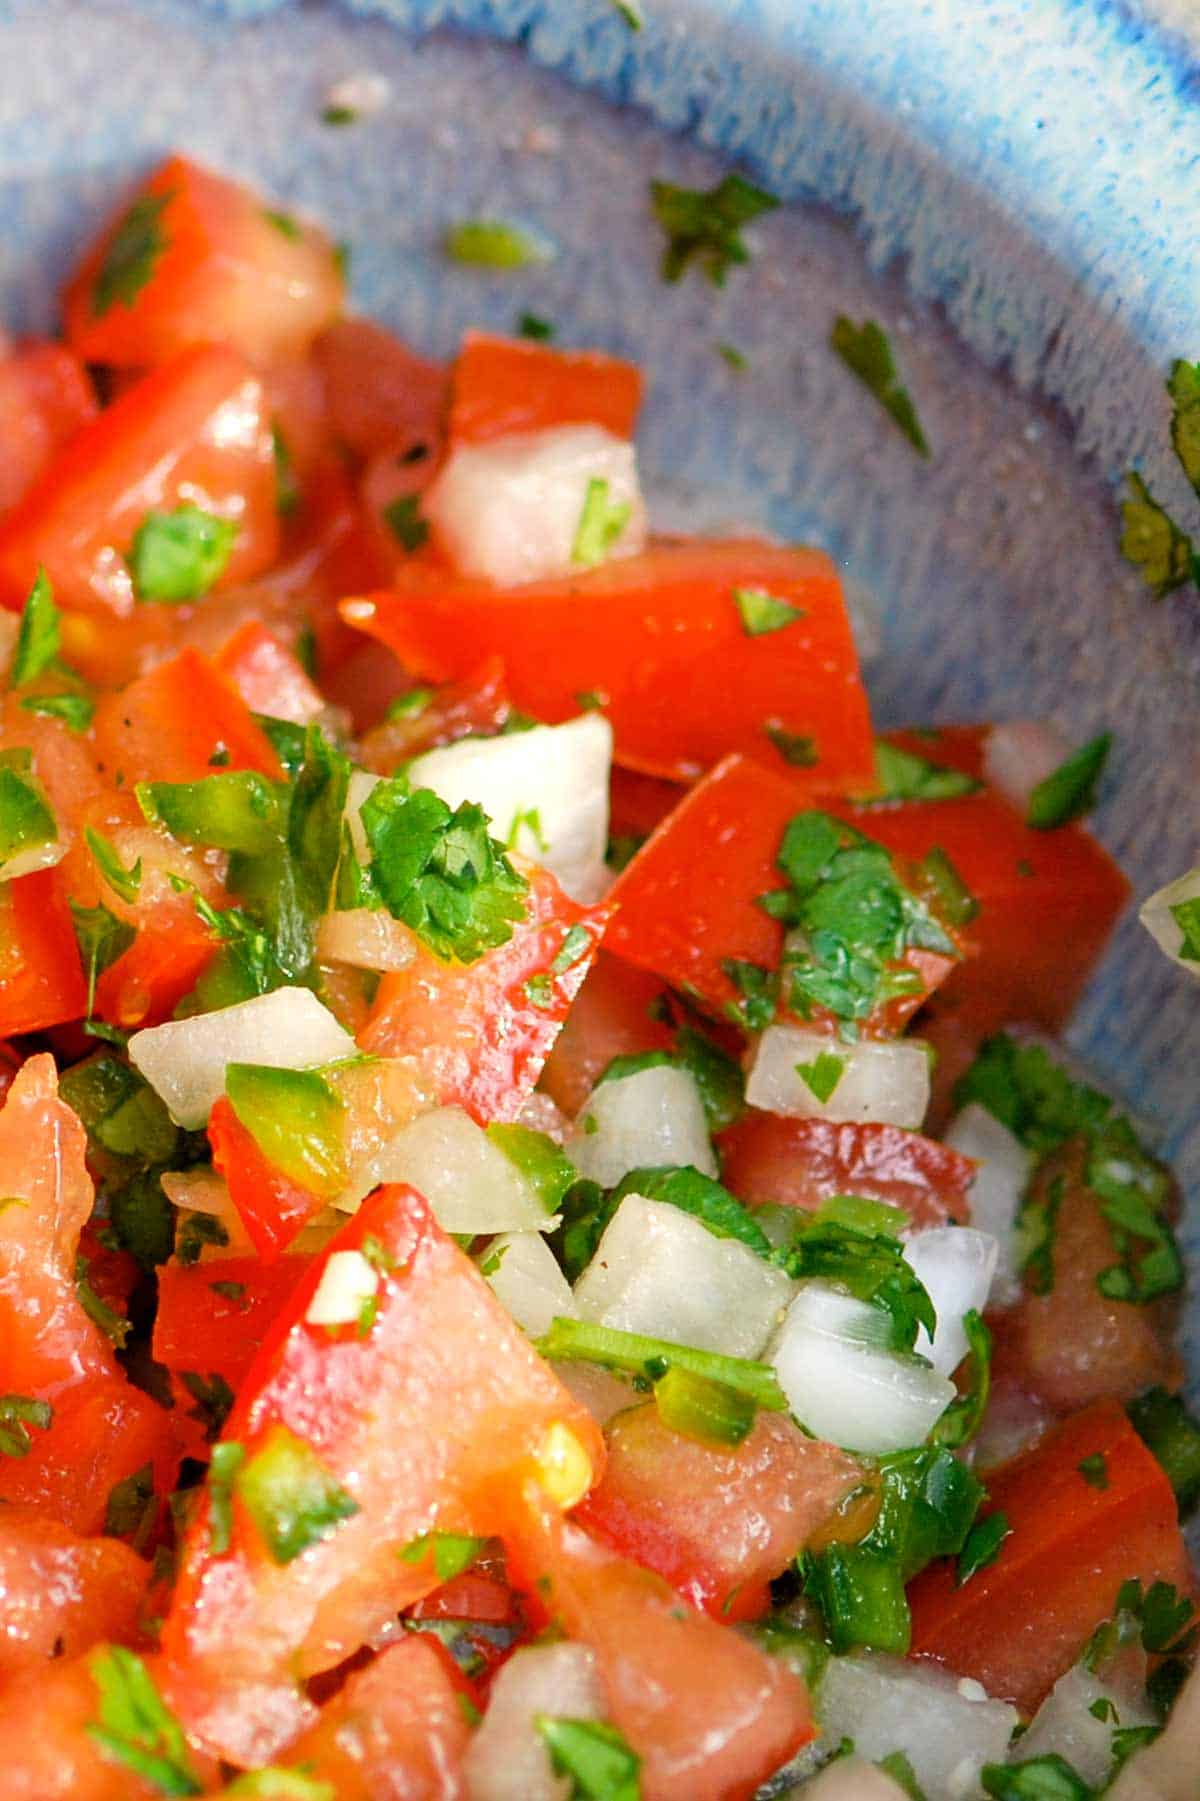 How to Make the Best Pico de Gallo Salsa // You'll love this easy pico de gallo recipe! With just 6 simple ingredients you'll have fresh, zesty, delicious tomato salsa in no time.